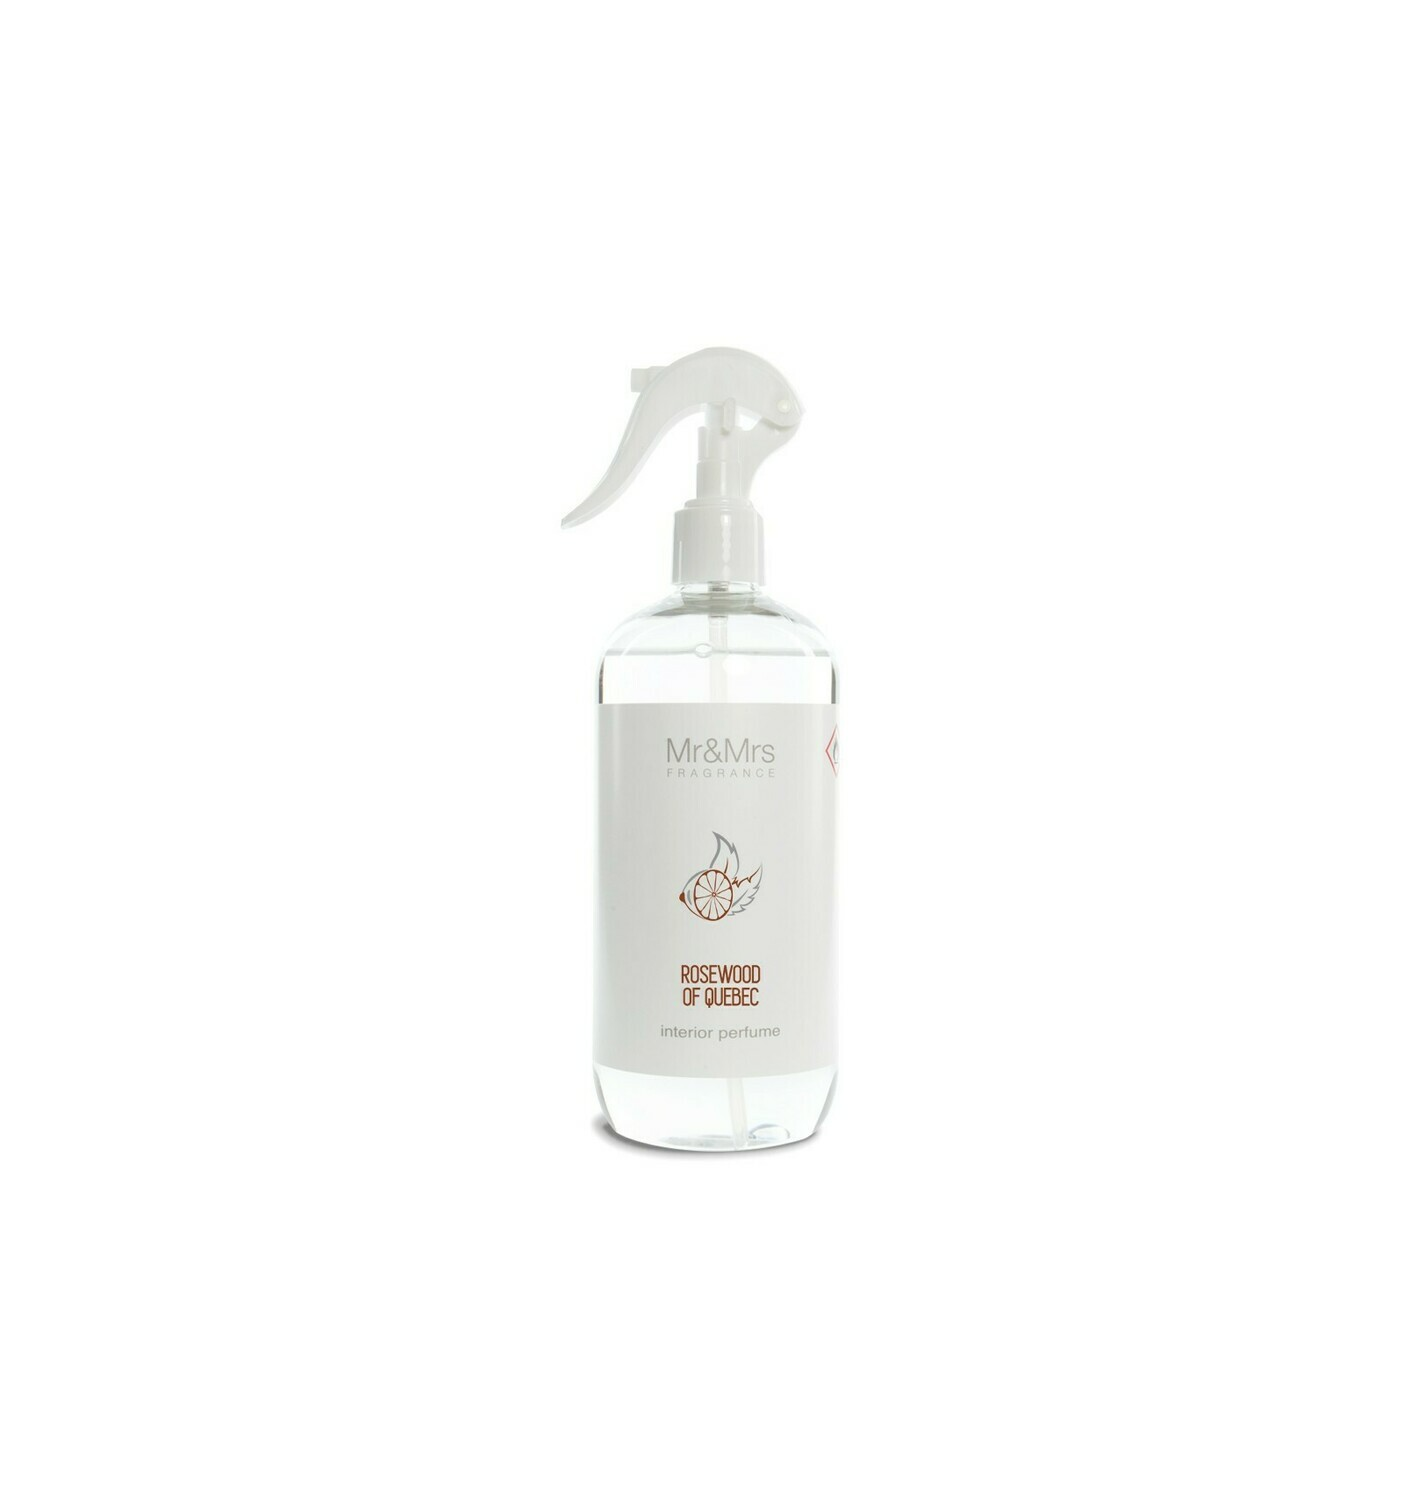 Mr And Mrs Fragrance Rosewood Of Quebec 500ml Spray Ambiance & Textile